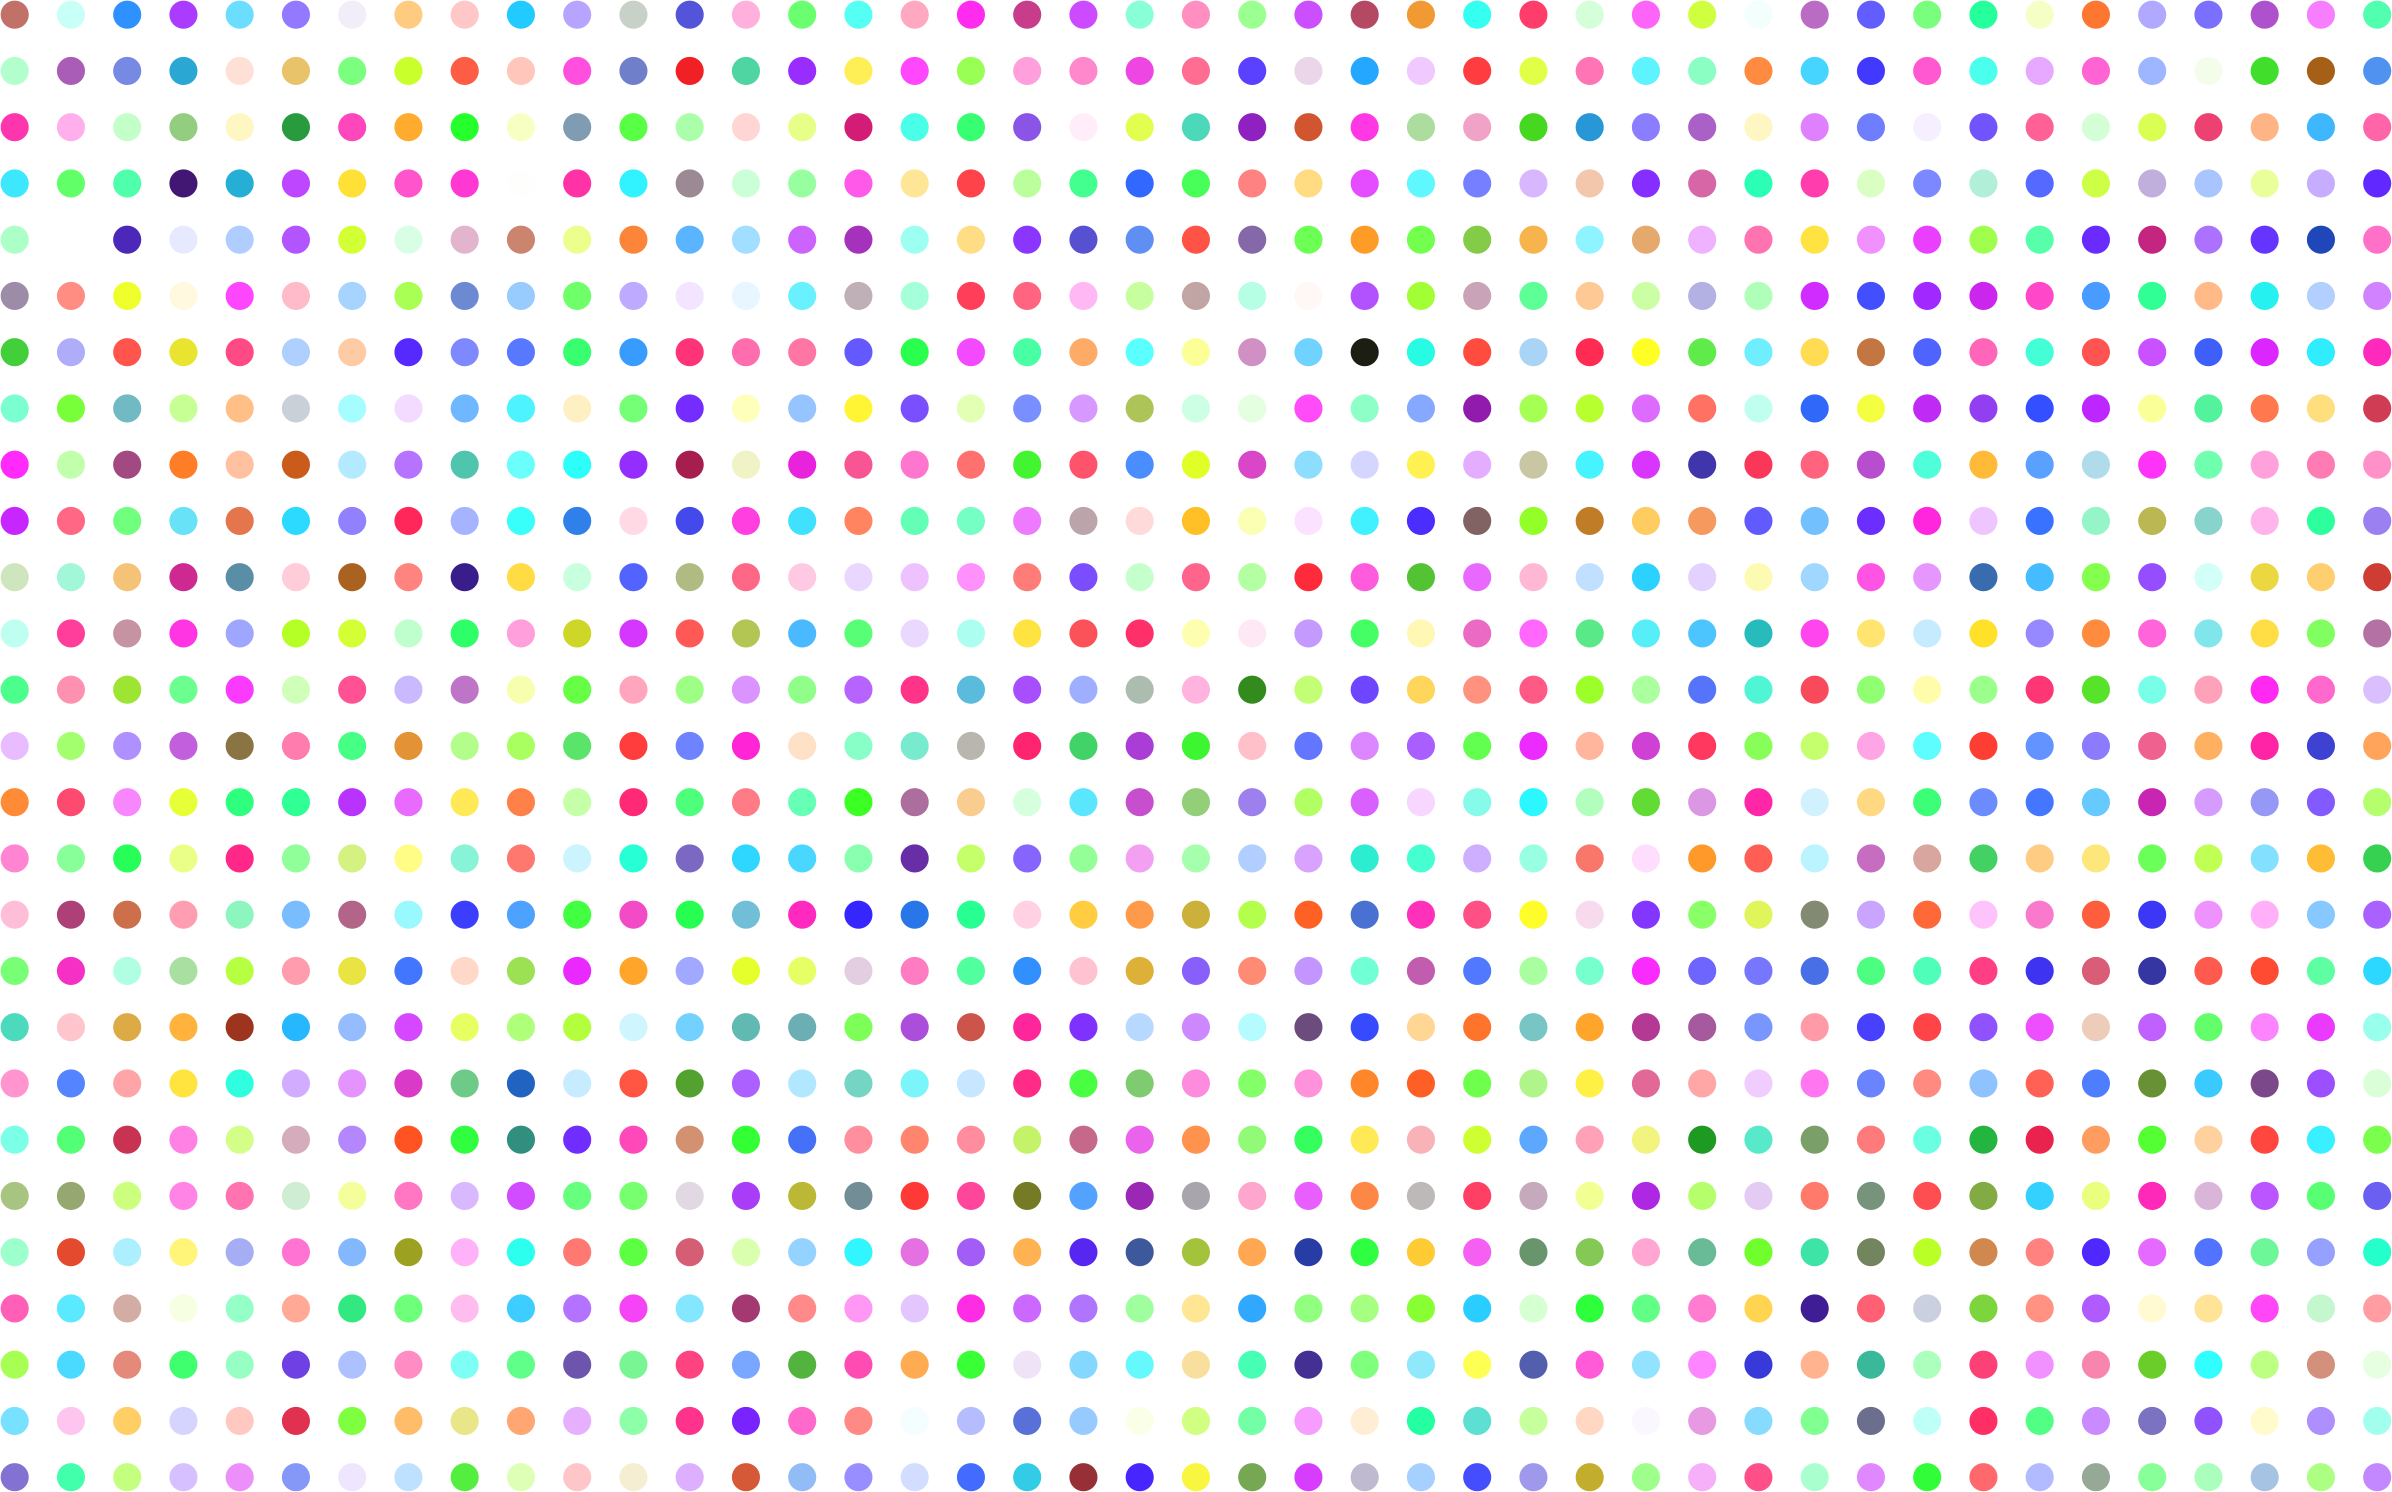 Prismatic Polka Dots No Background by GDJ